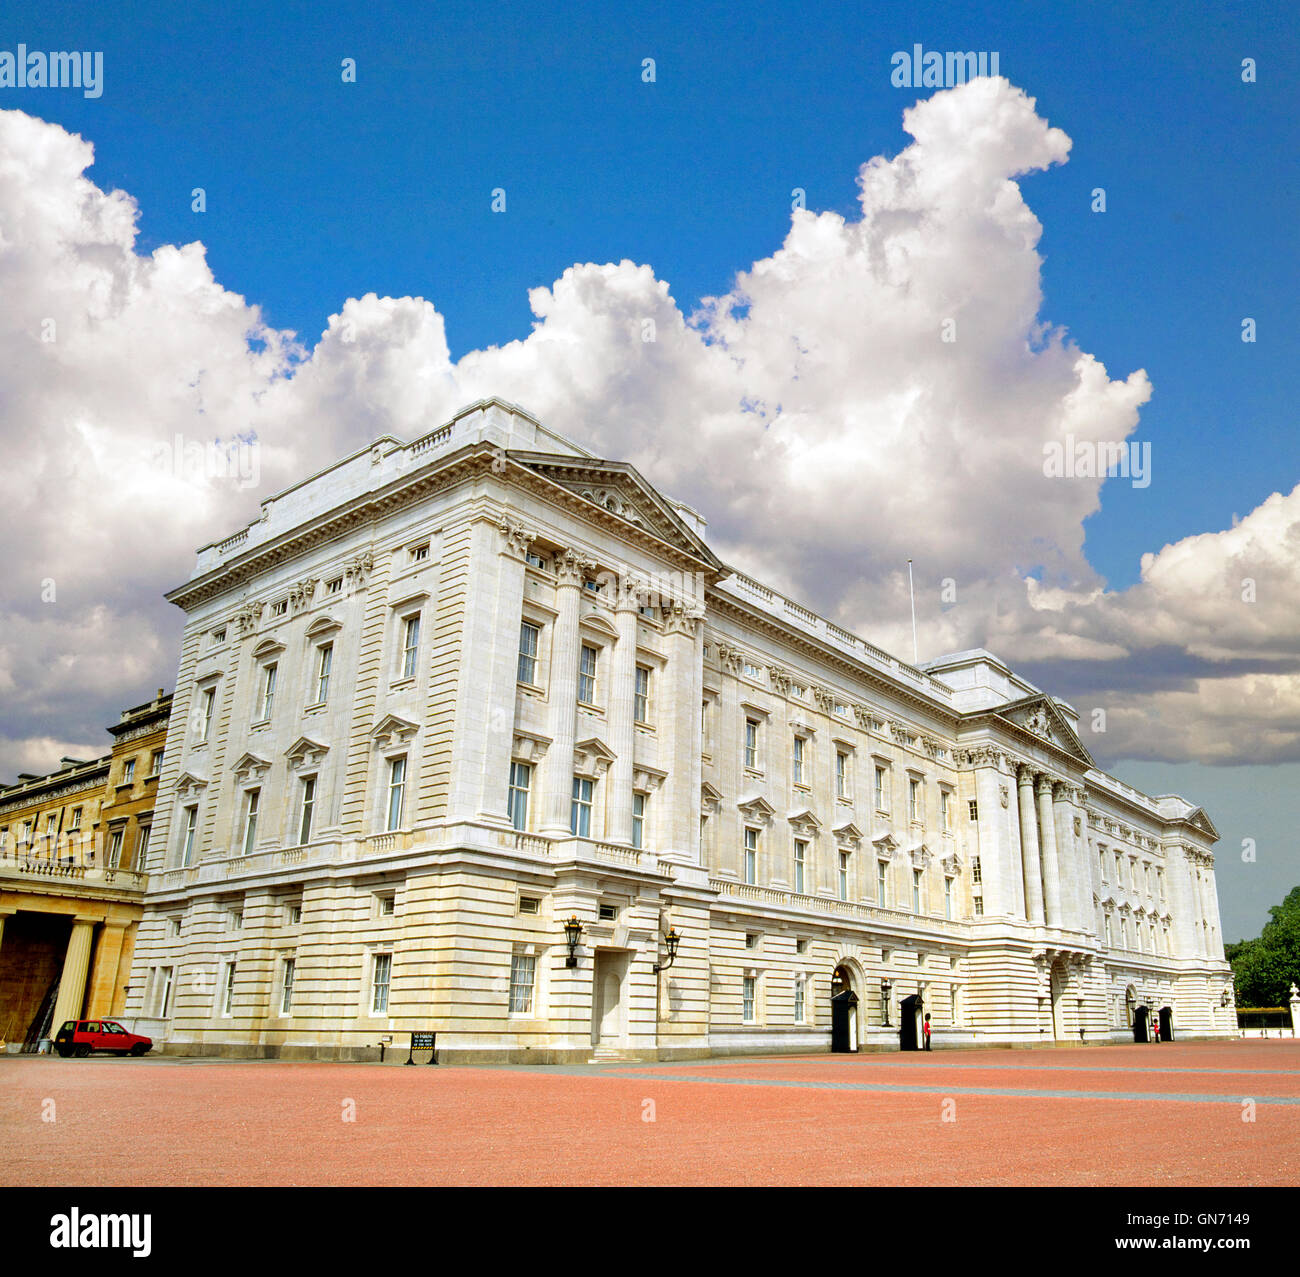 A front view of Buckingham Palace, home of the Royal Family and Queen of England, Queen Elizabeth II, in London, - Stock Image